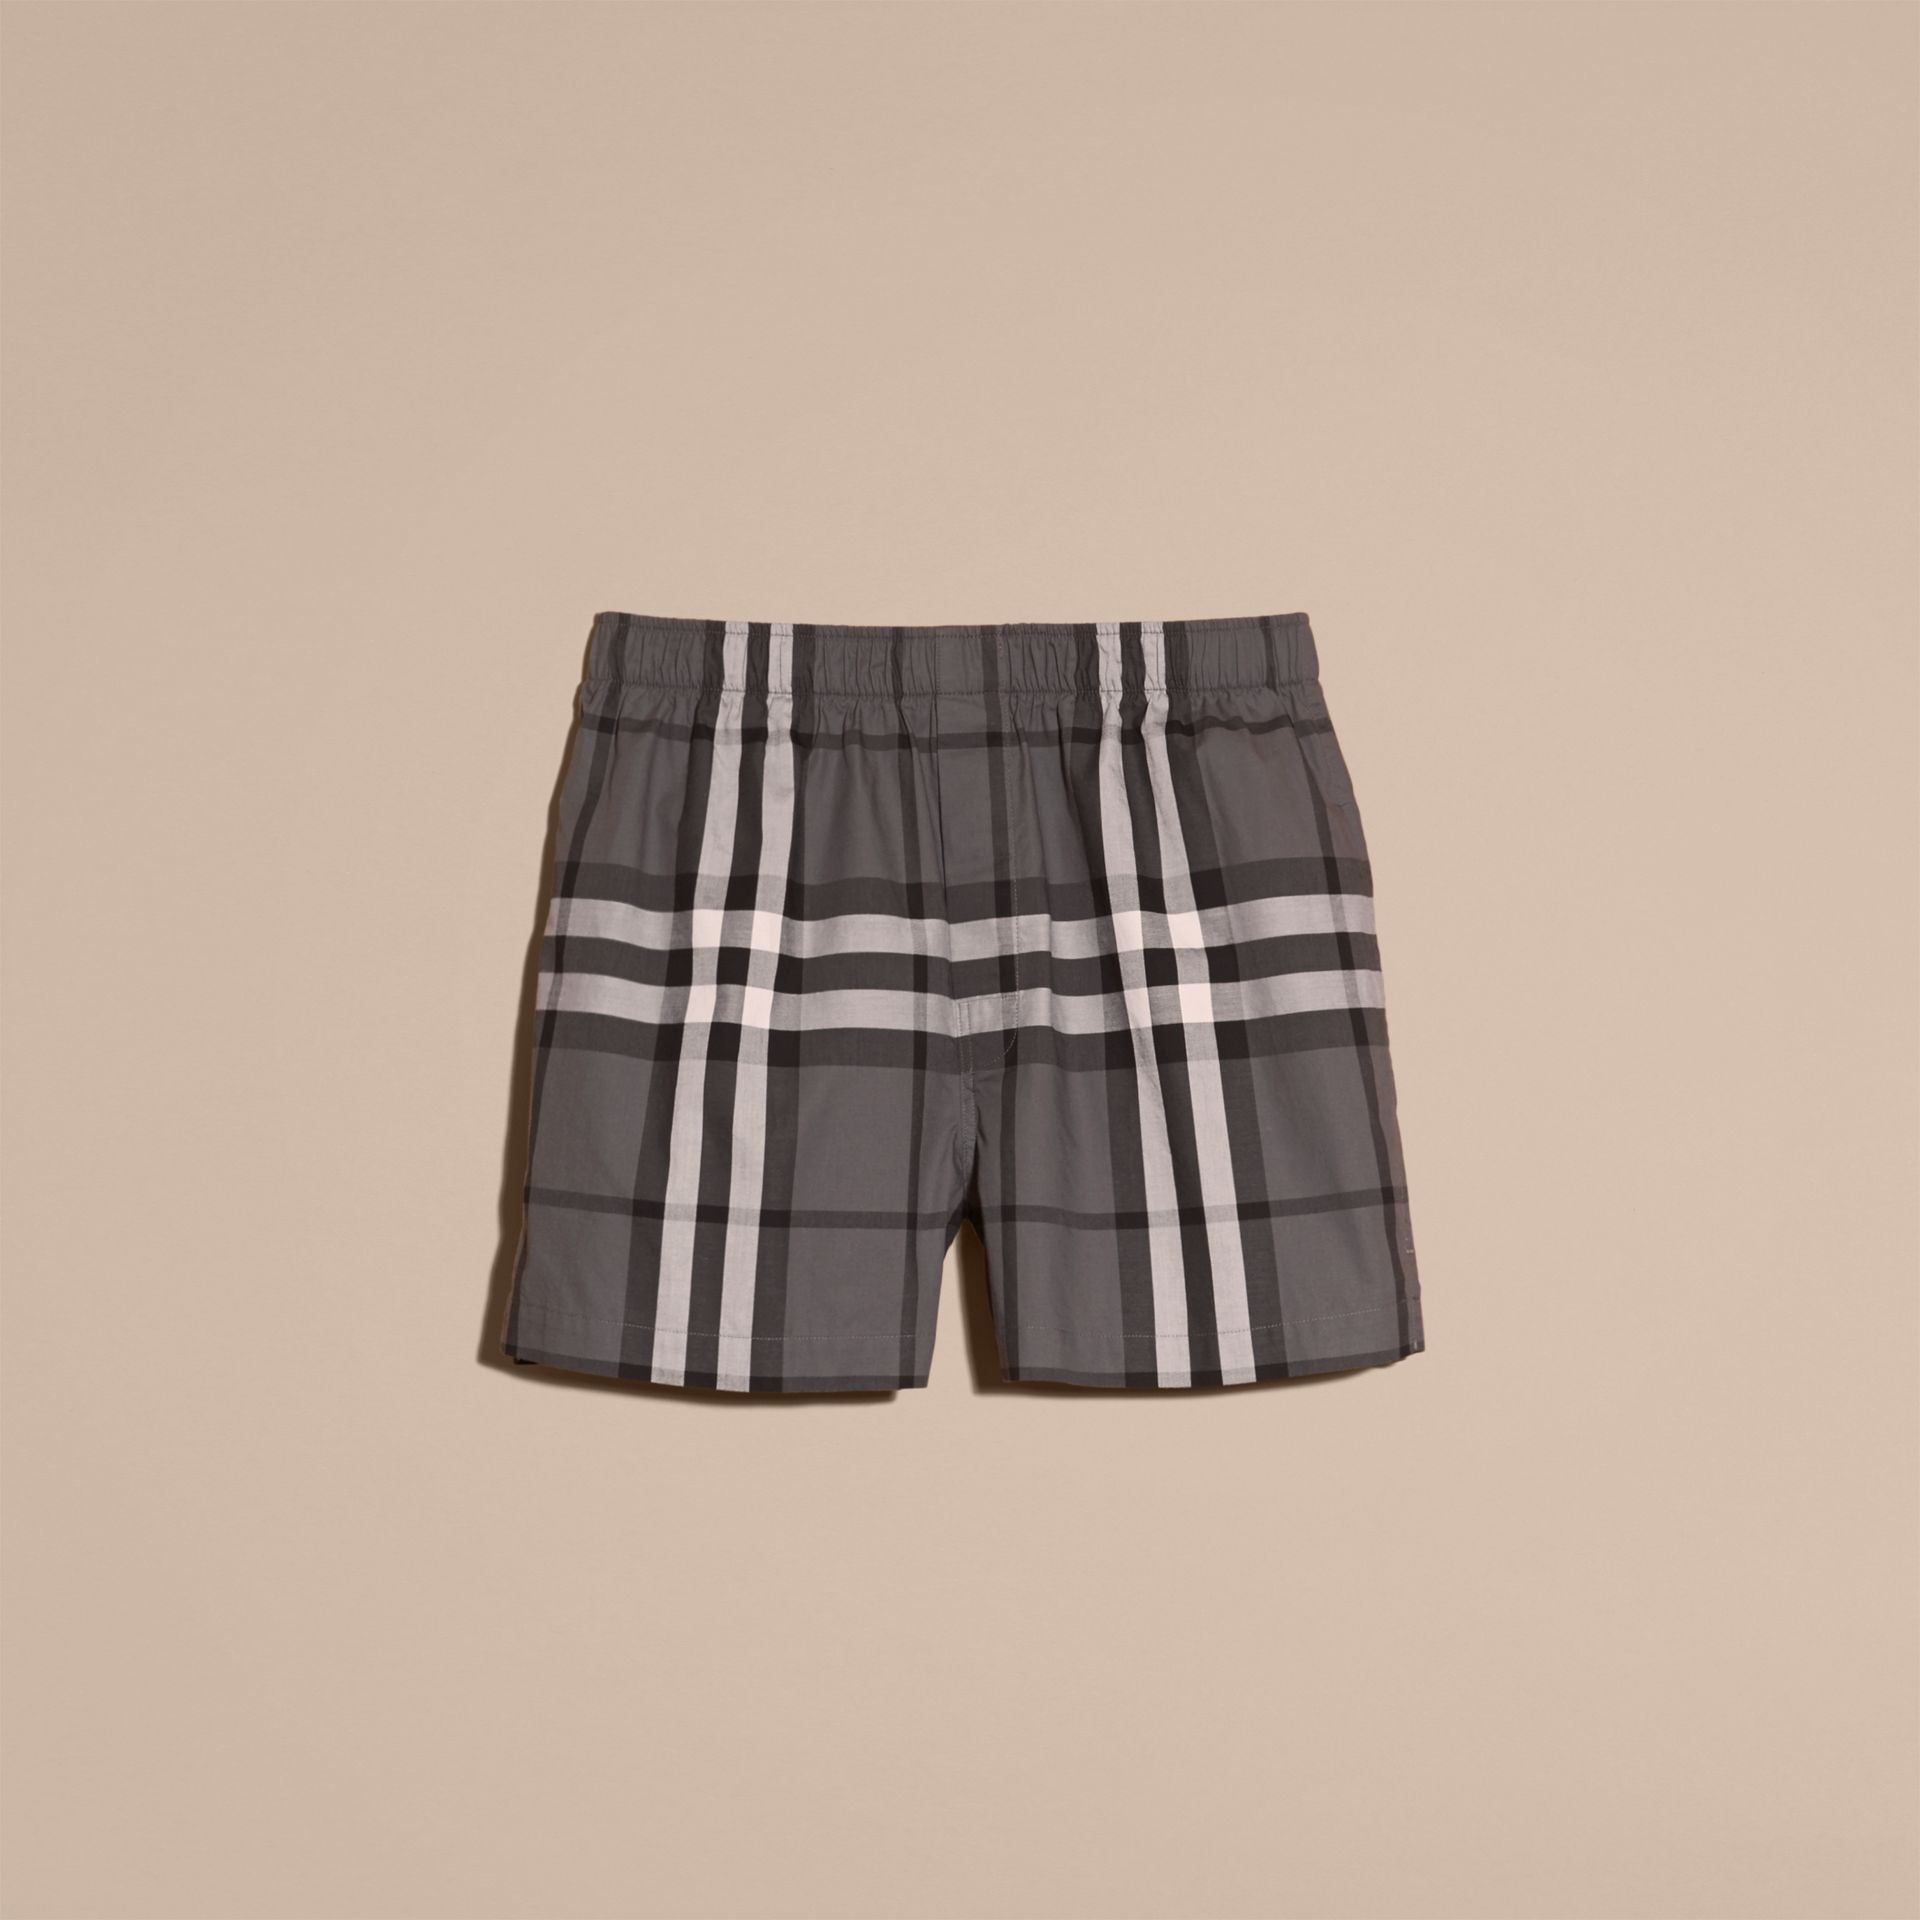 Check Twill Cotton Boxer Shorts Charcoal - gallery image 4